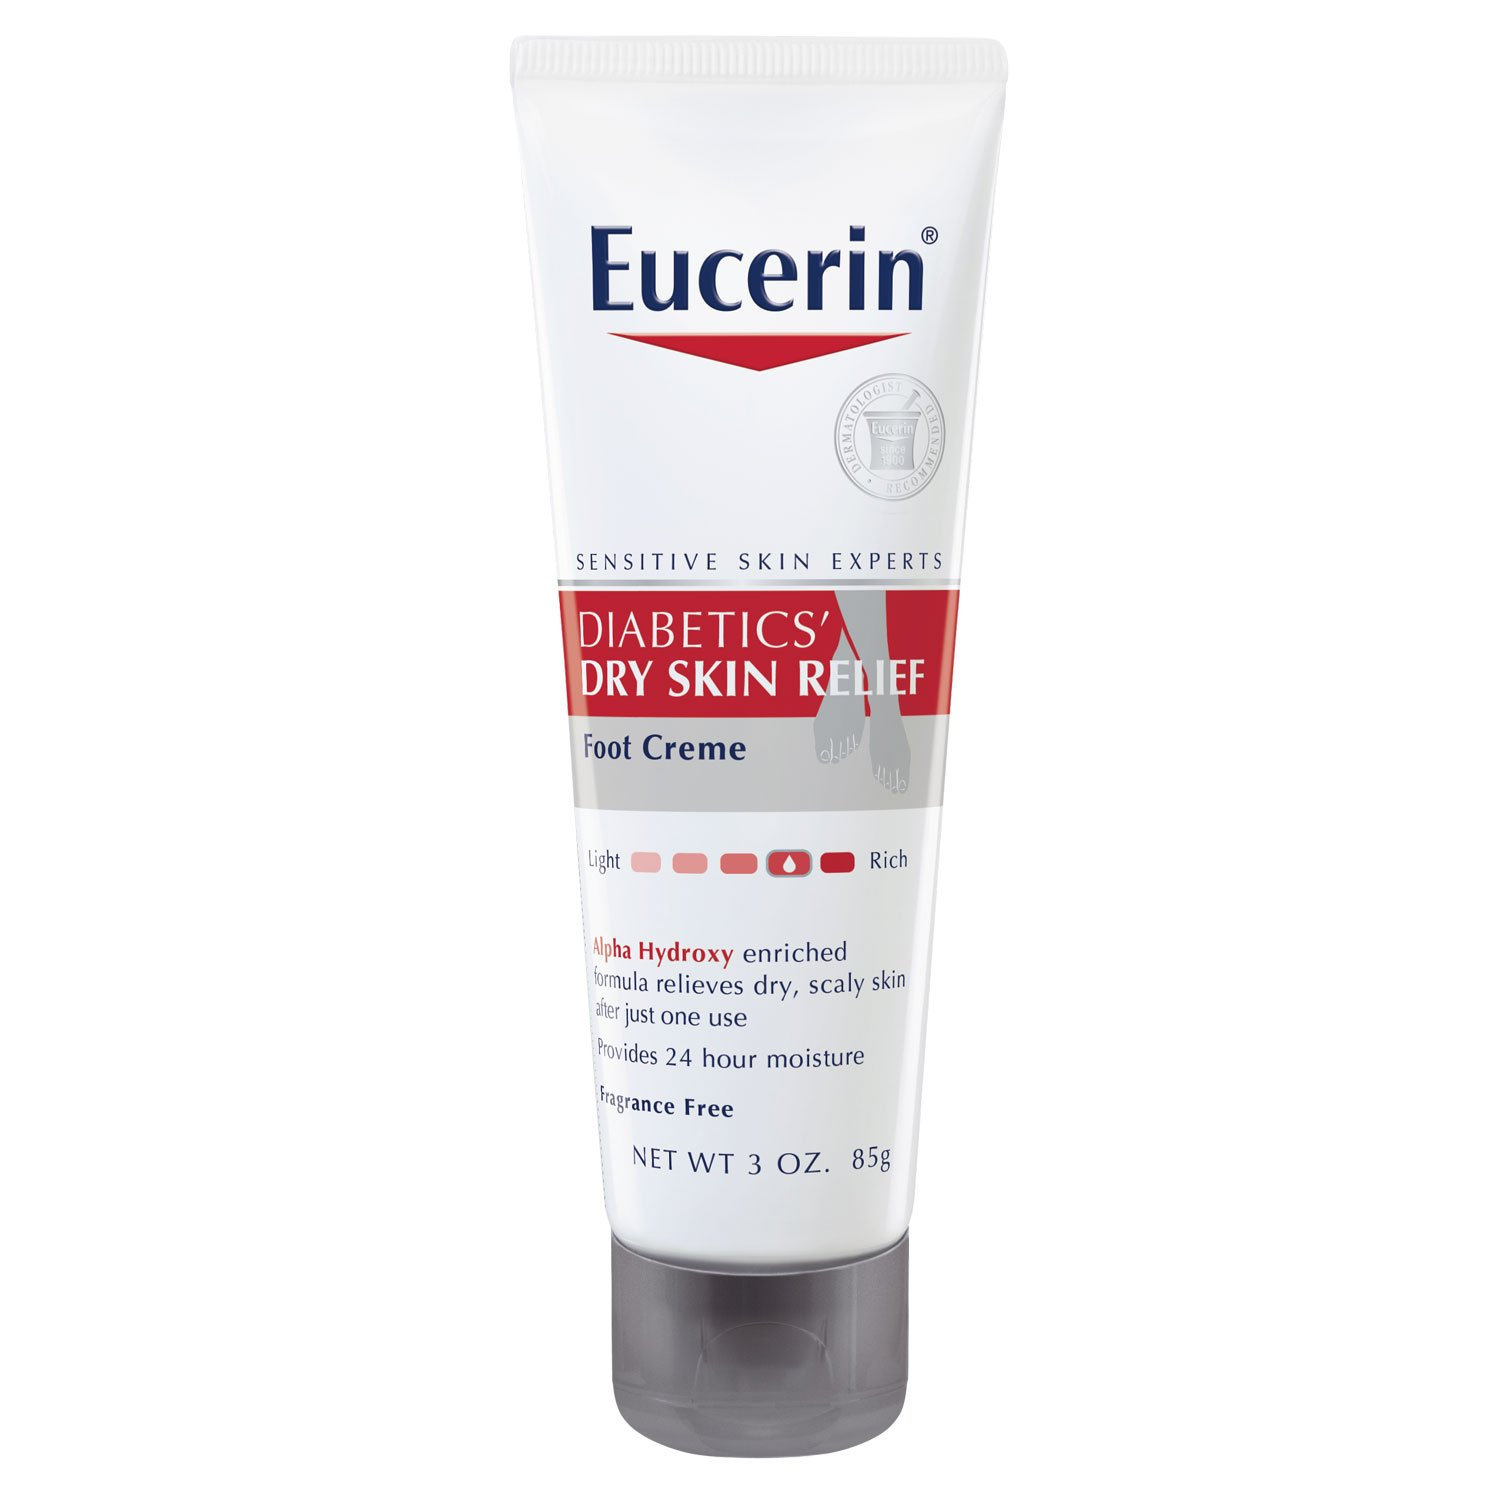 Eucerin Diabetics' Dry Skin Relief Foot Creme, 3 Ounce (Pack of 3) by Eucerin